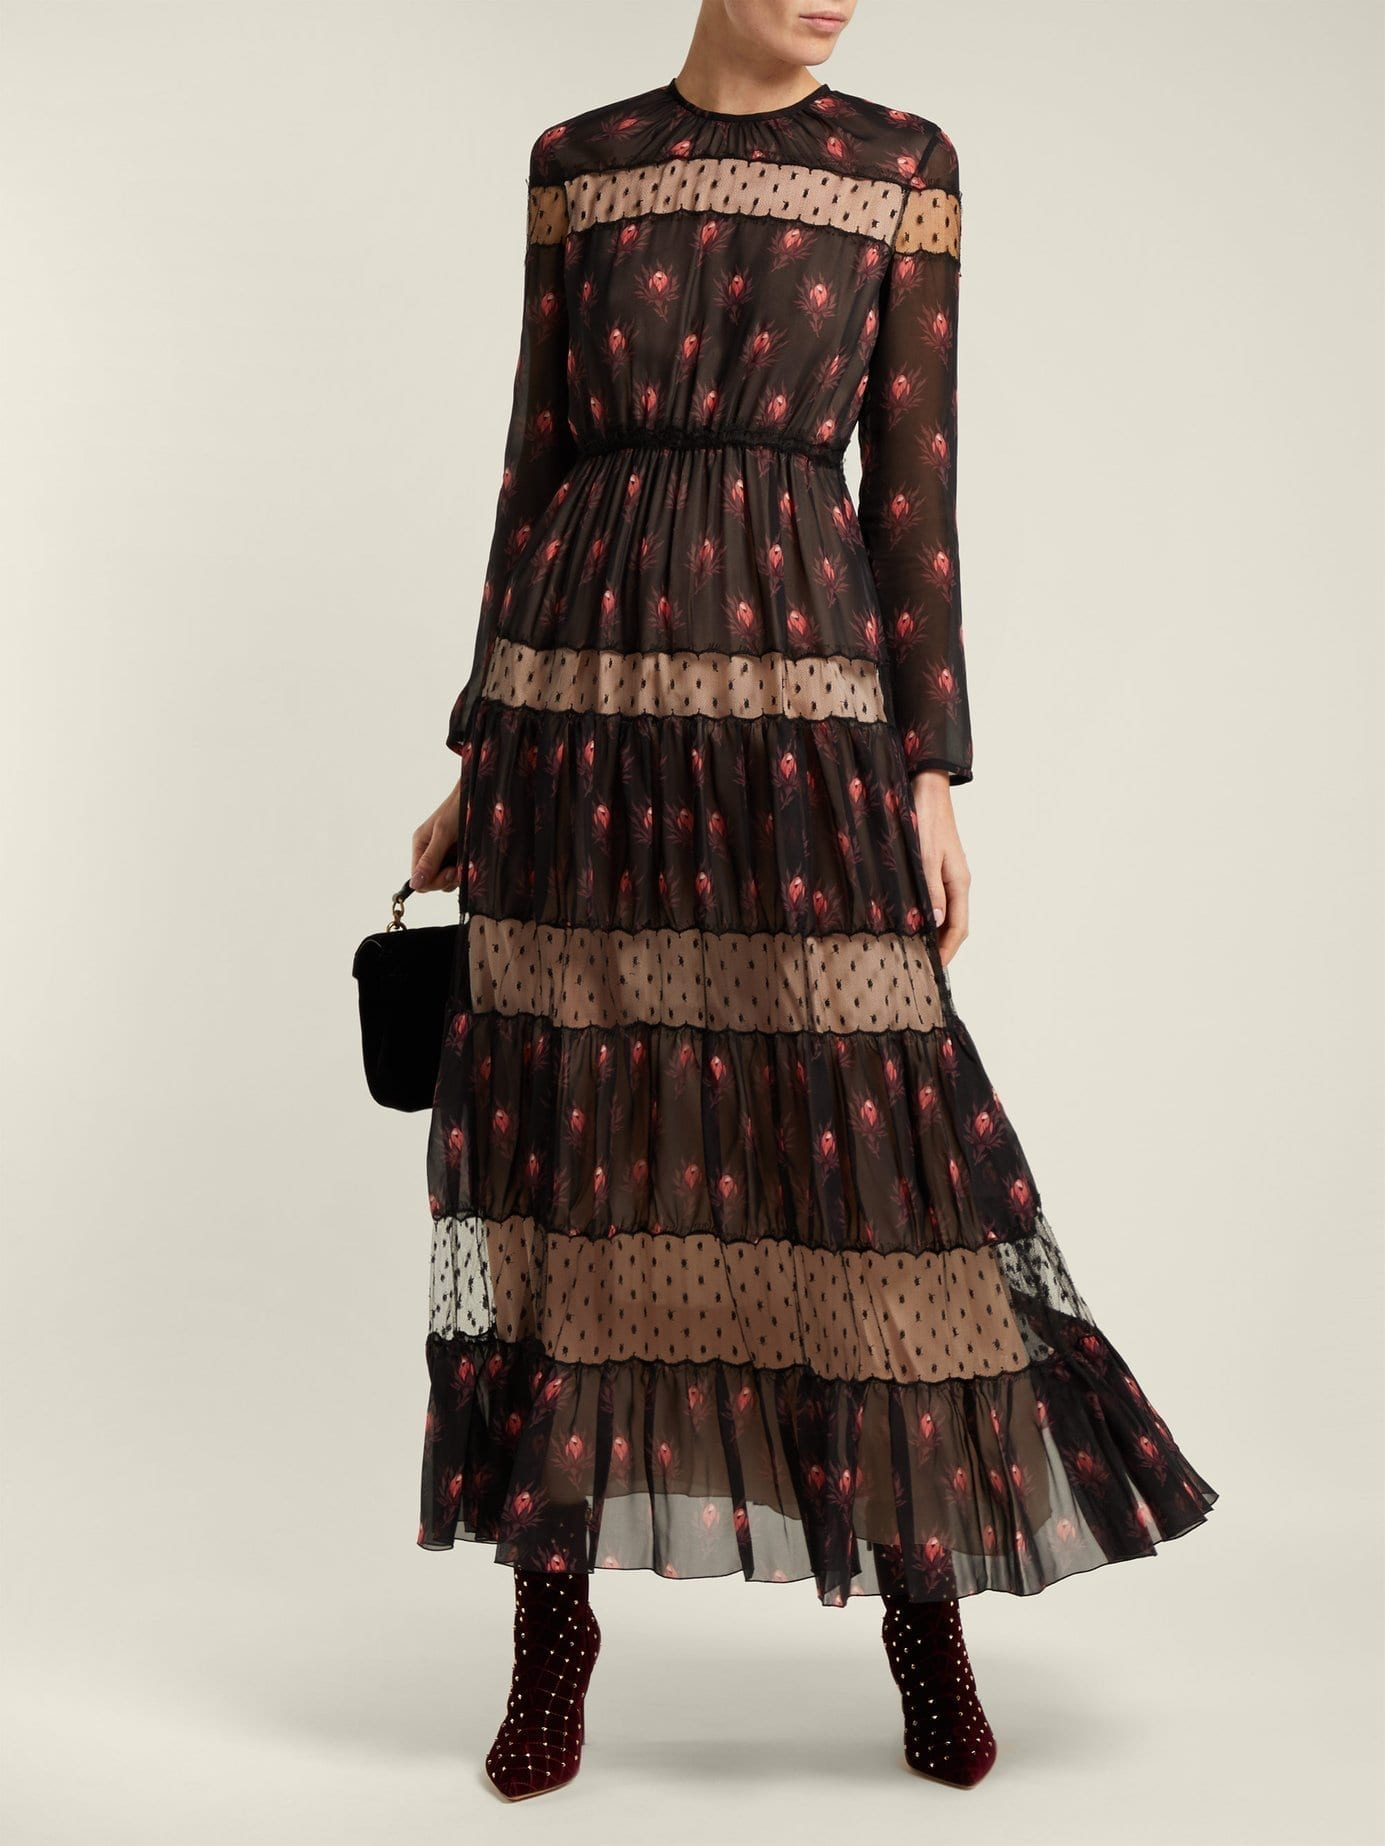 GIAMBATTISTA VALLI Rosebud Print Silk Chiffon Black Dress